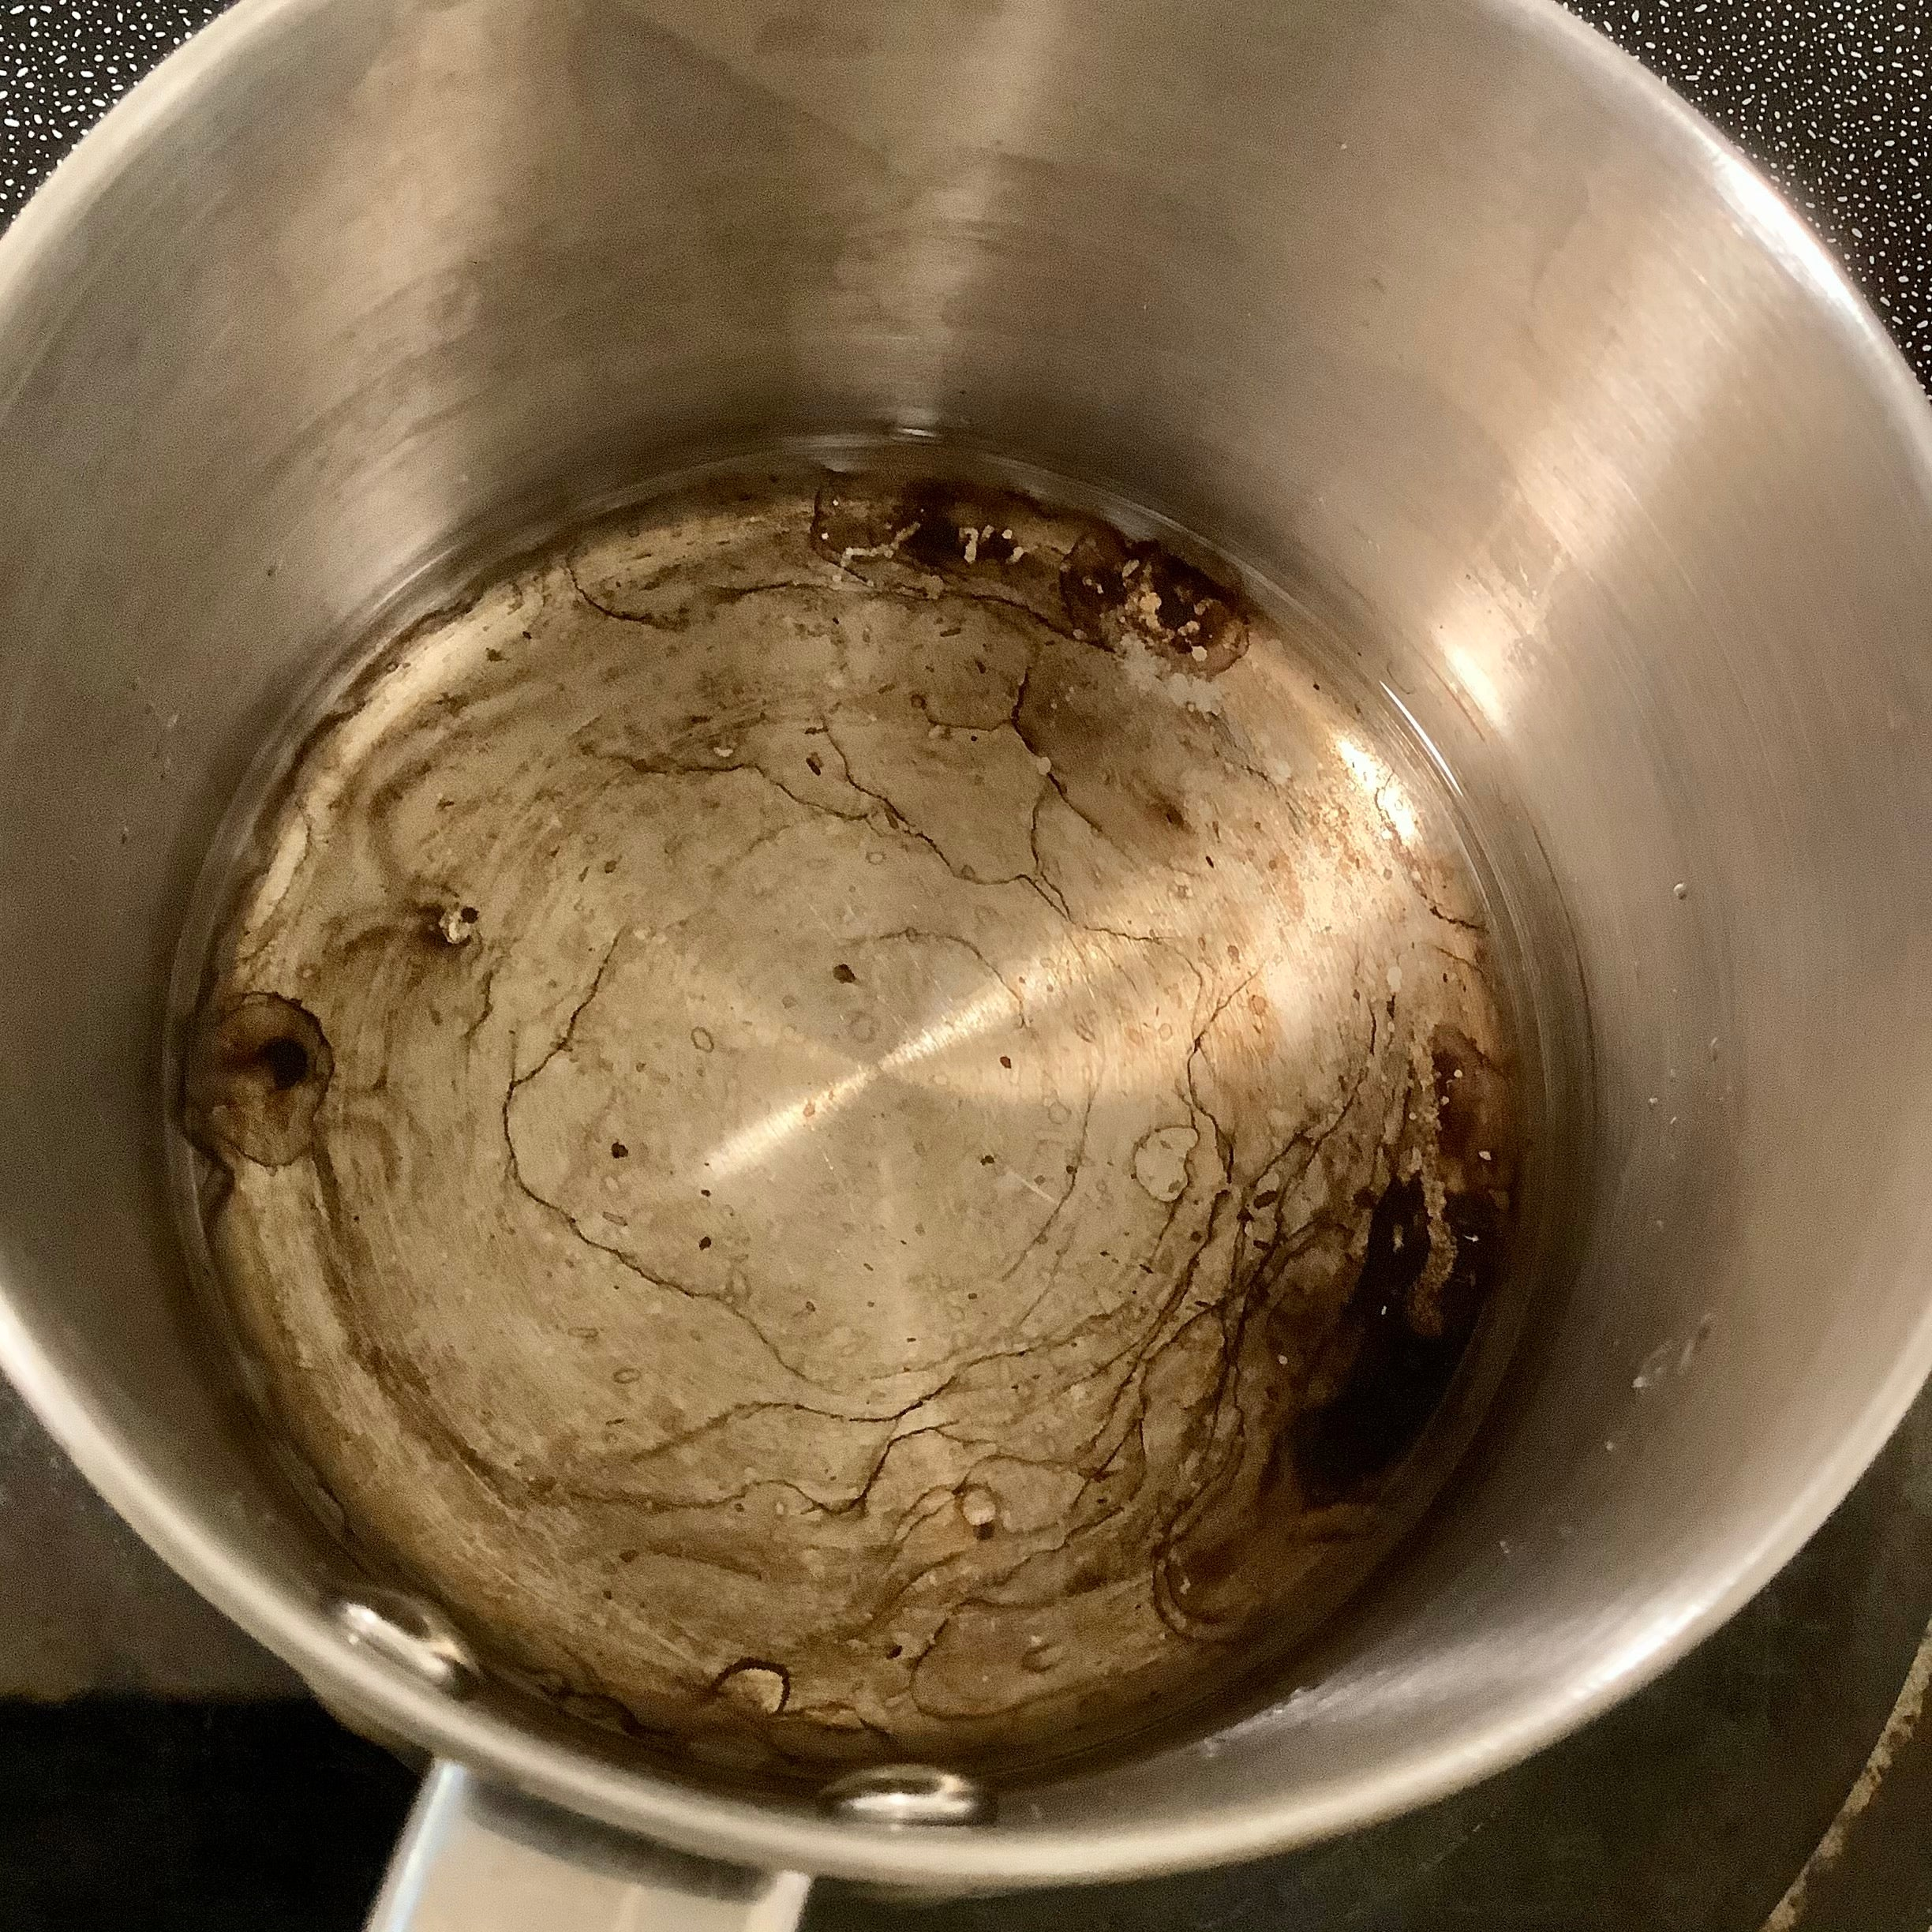 Stainless Steel Cooking Pot With Burnt Scorched Damage Before Cleaning